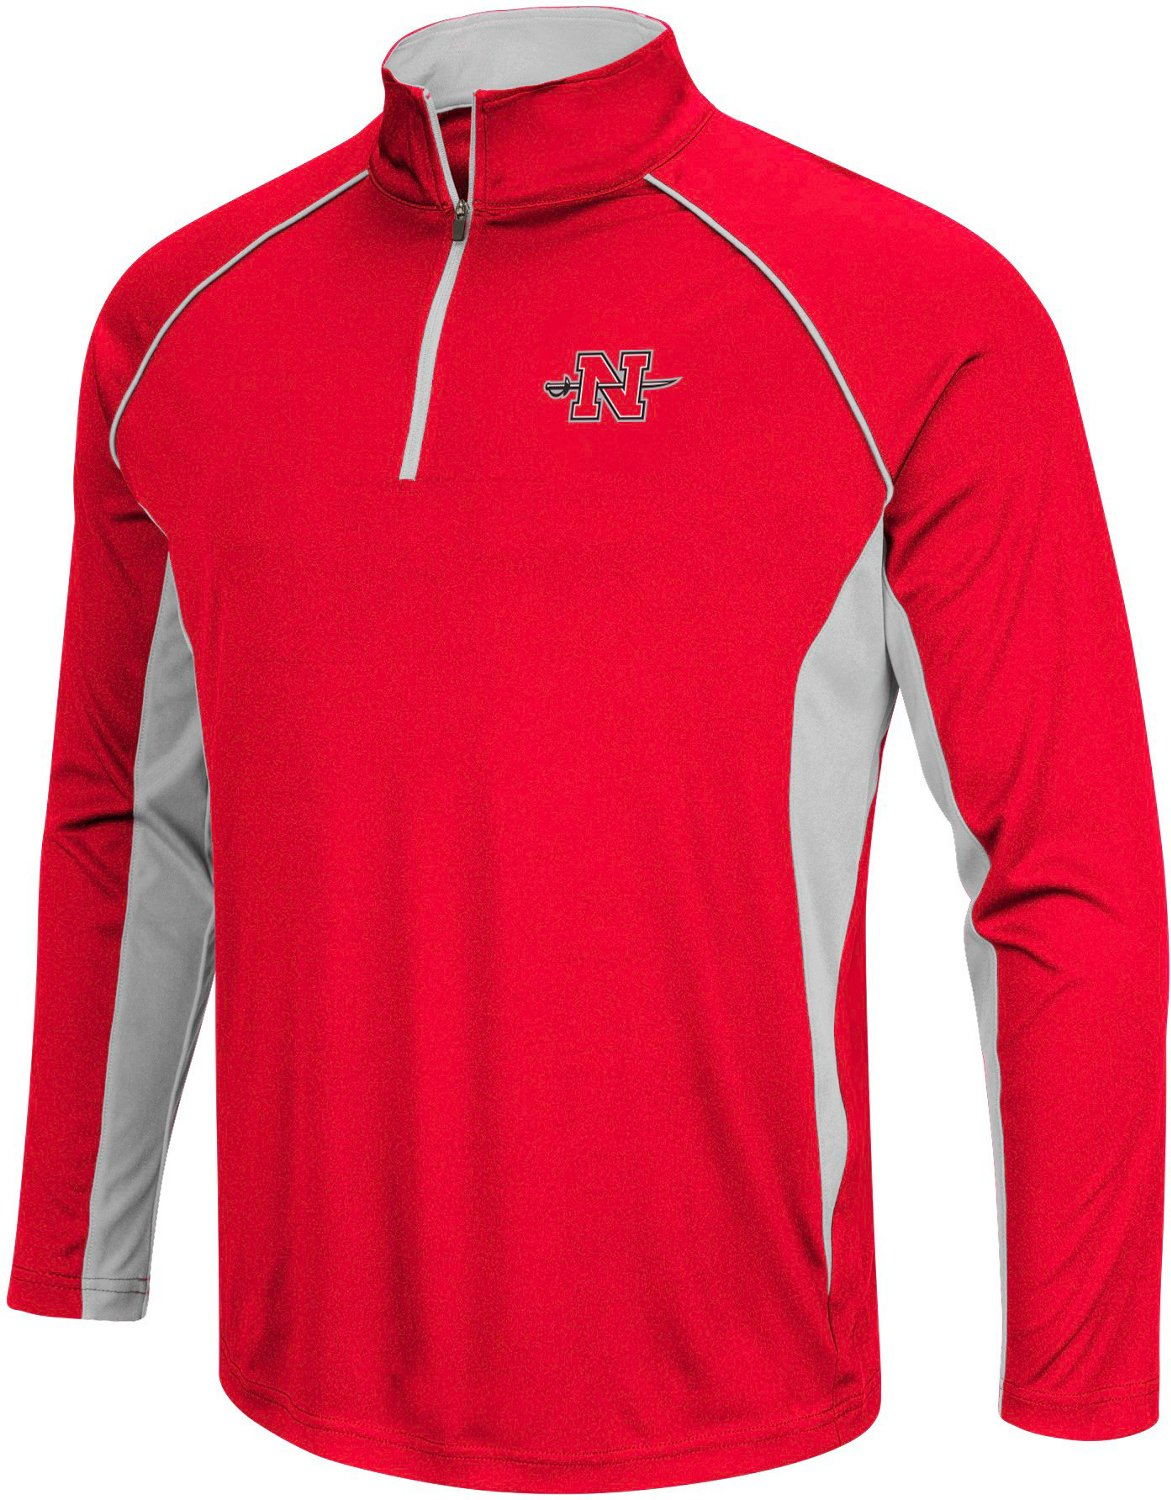 on sale 11223 e367d Colosseum Athletics Men's Nicholls State University Sand Tiger 1/4 Zip Top